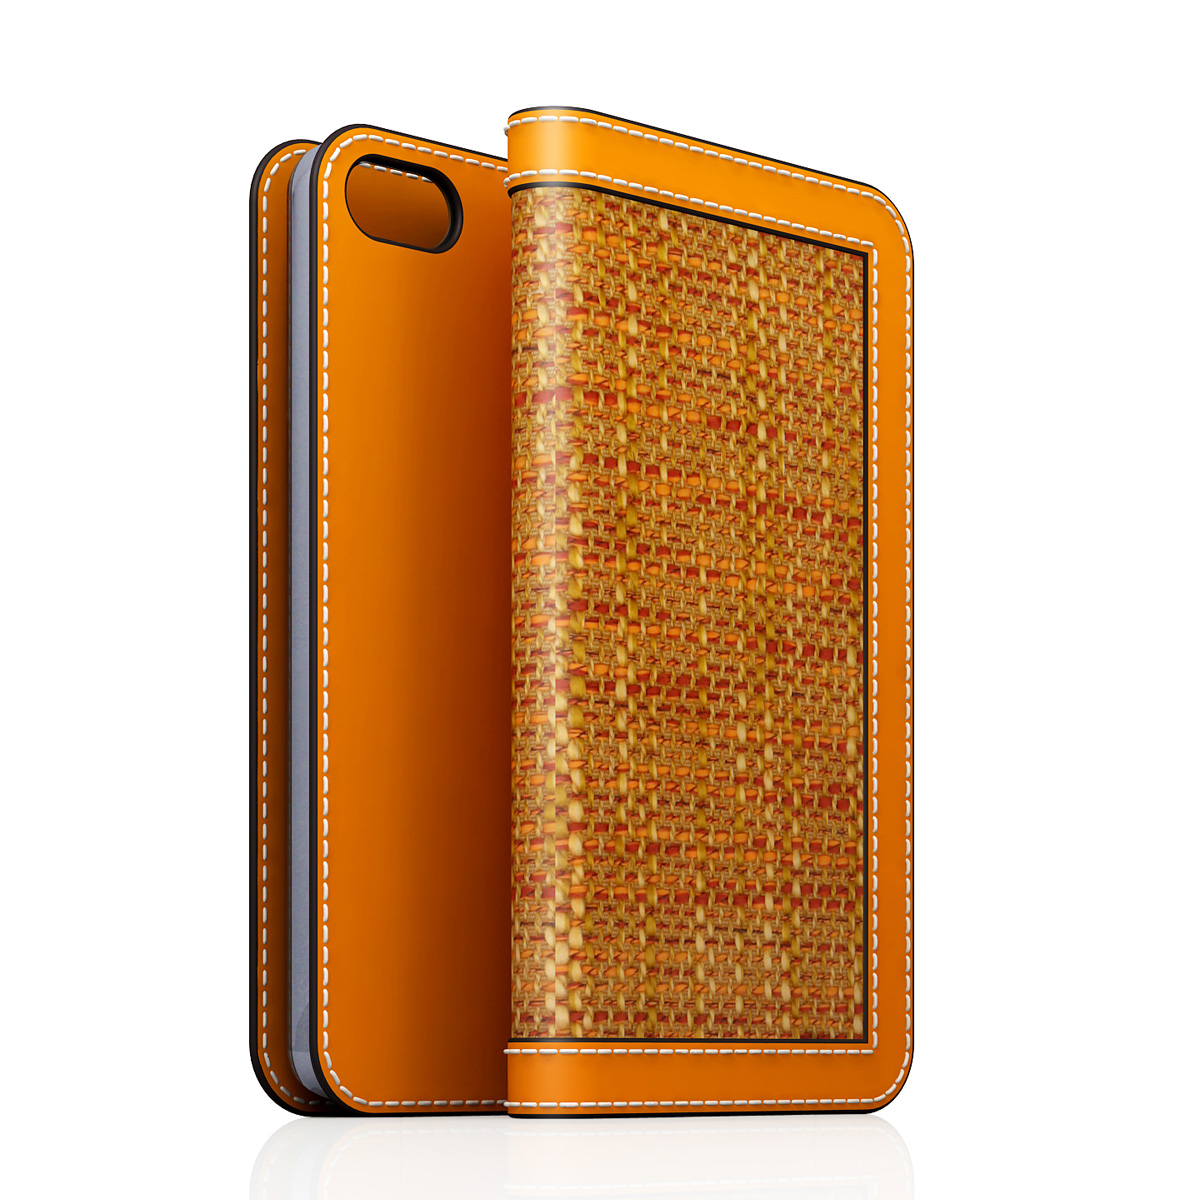 [iPhone5/5s] D5 Edition Calf Skin Leather Diary オレンジ